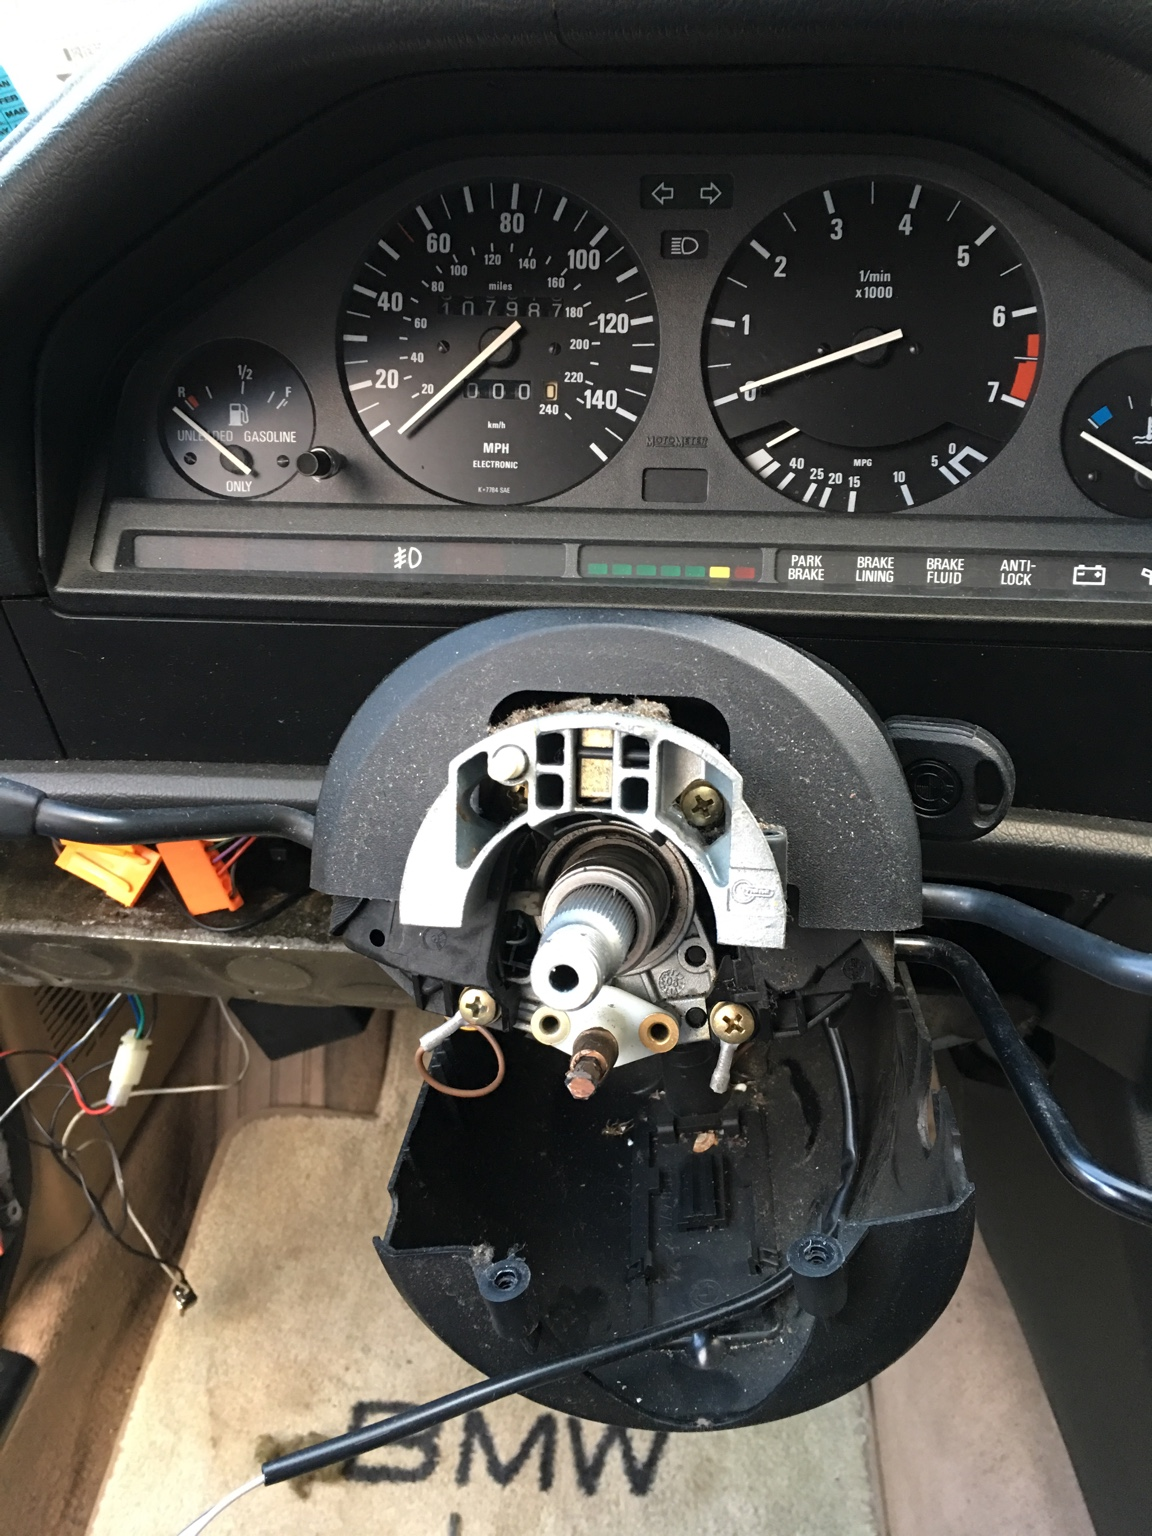 Switching Air Bag To Non Wheel R3vlimited Forums How Wire It For Switched The Horn Should Only Other Issue With Where Contact Ring Is I Still Cant Figure That Out